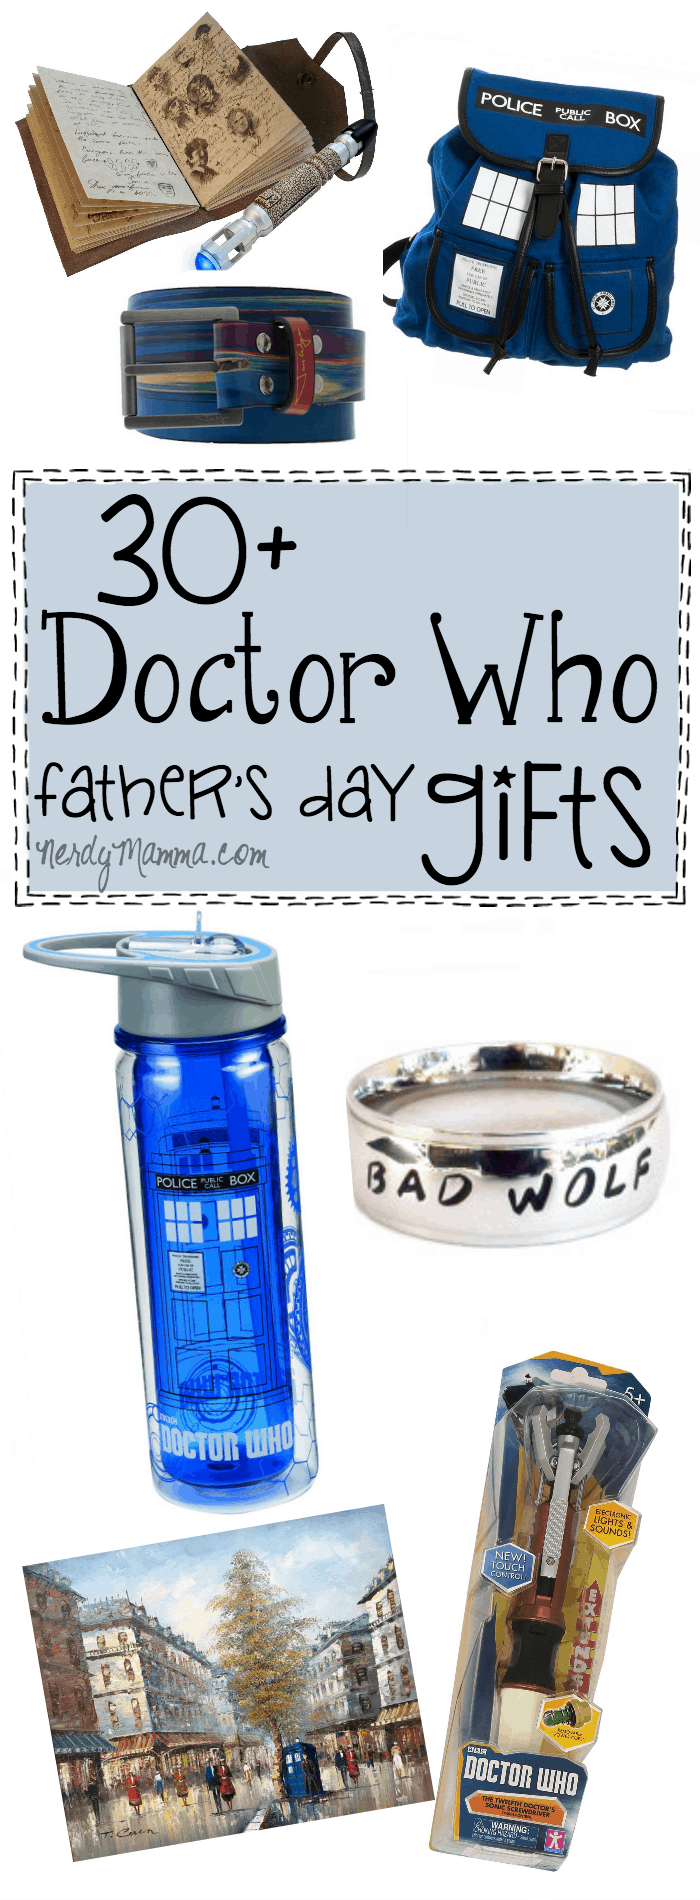 Oh, these 30 Doctor Who Father's Day gift ideas are EXACTLY what I needed...my husband is such a whovian--this will be perfect!